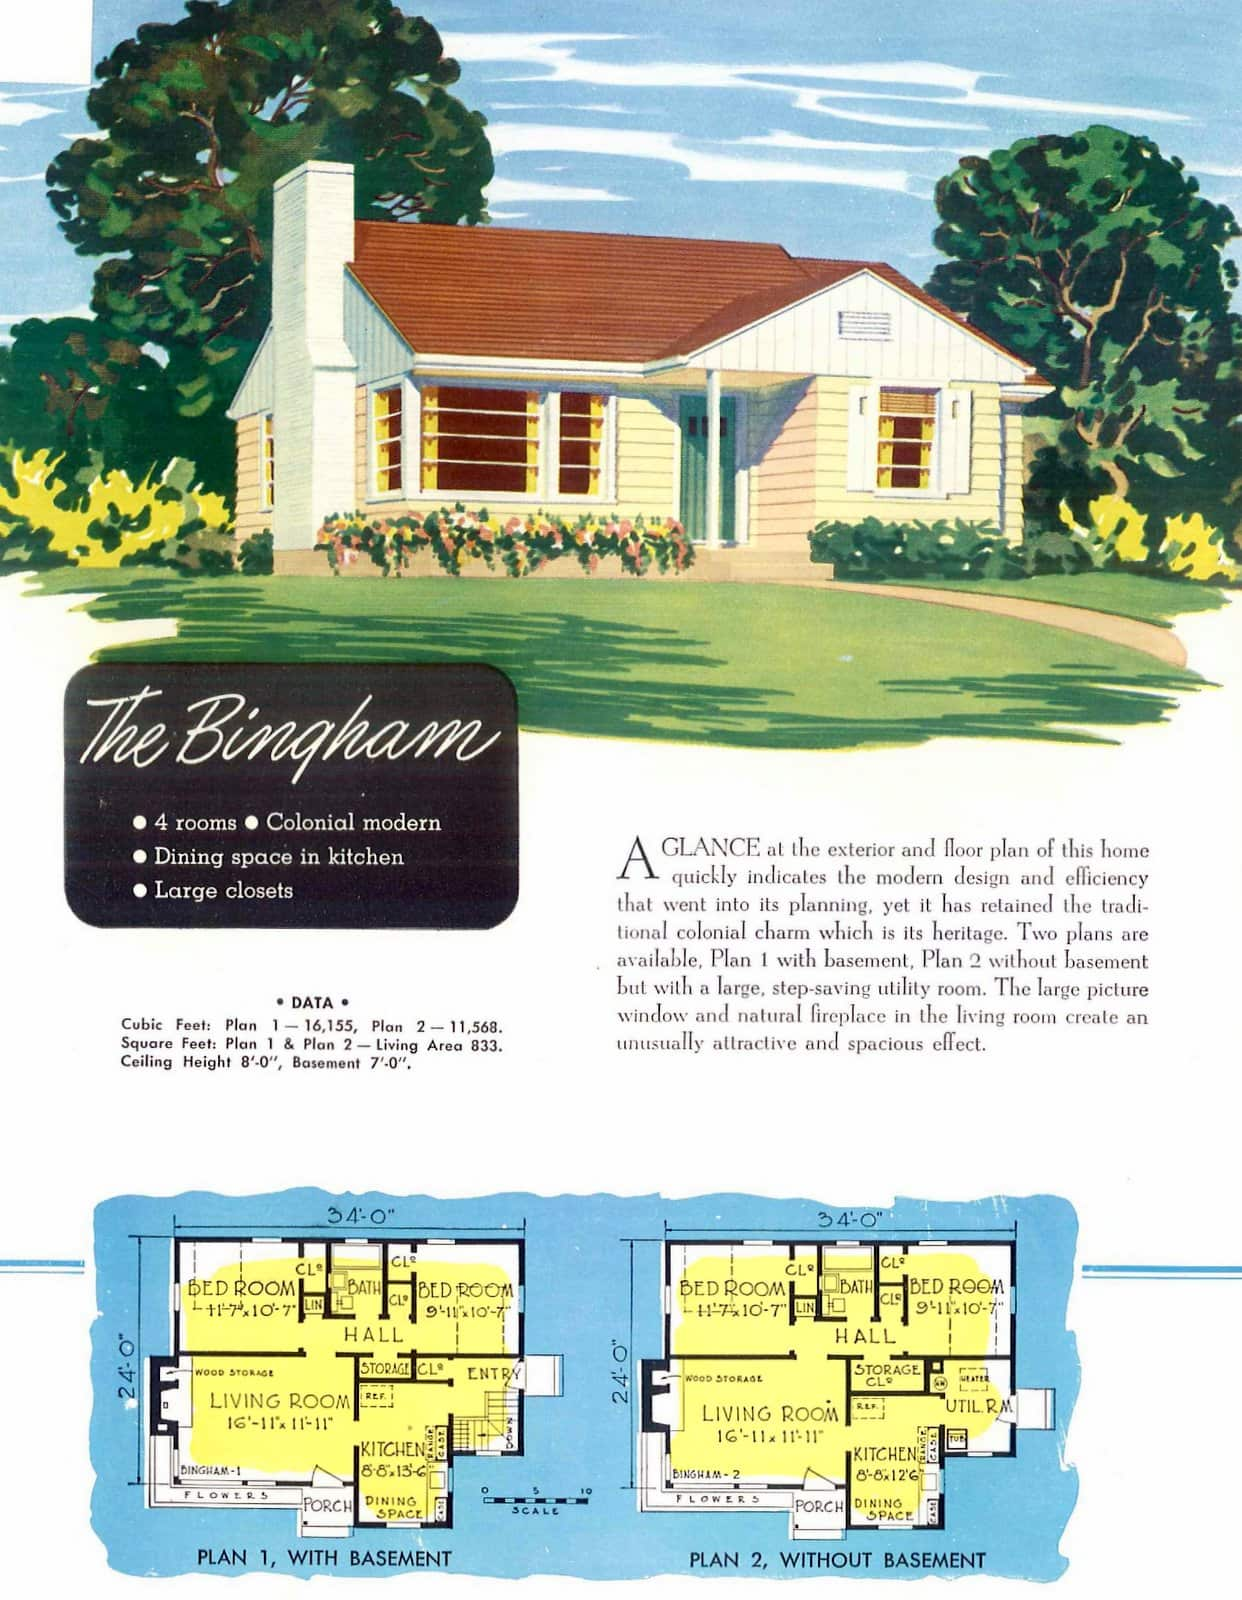 Low-cost small midcentury home plans from 1952 (3)